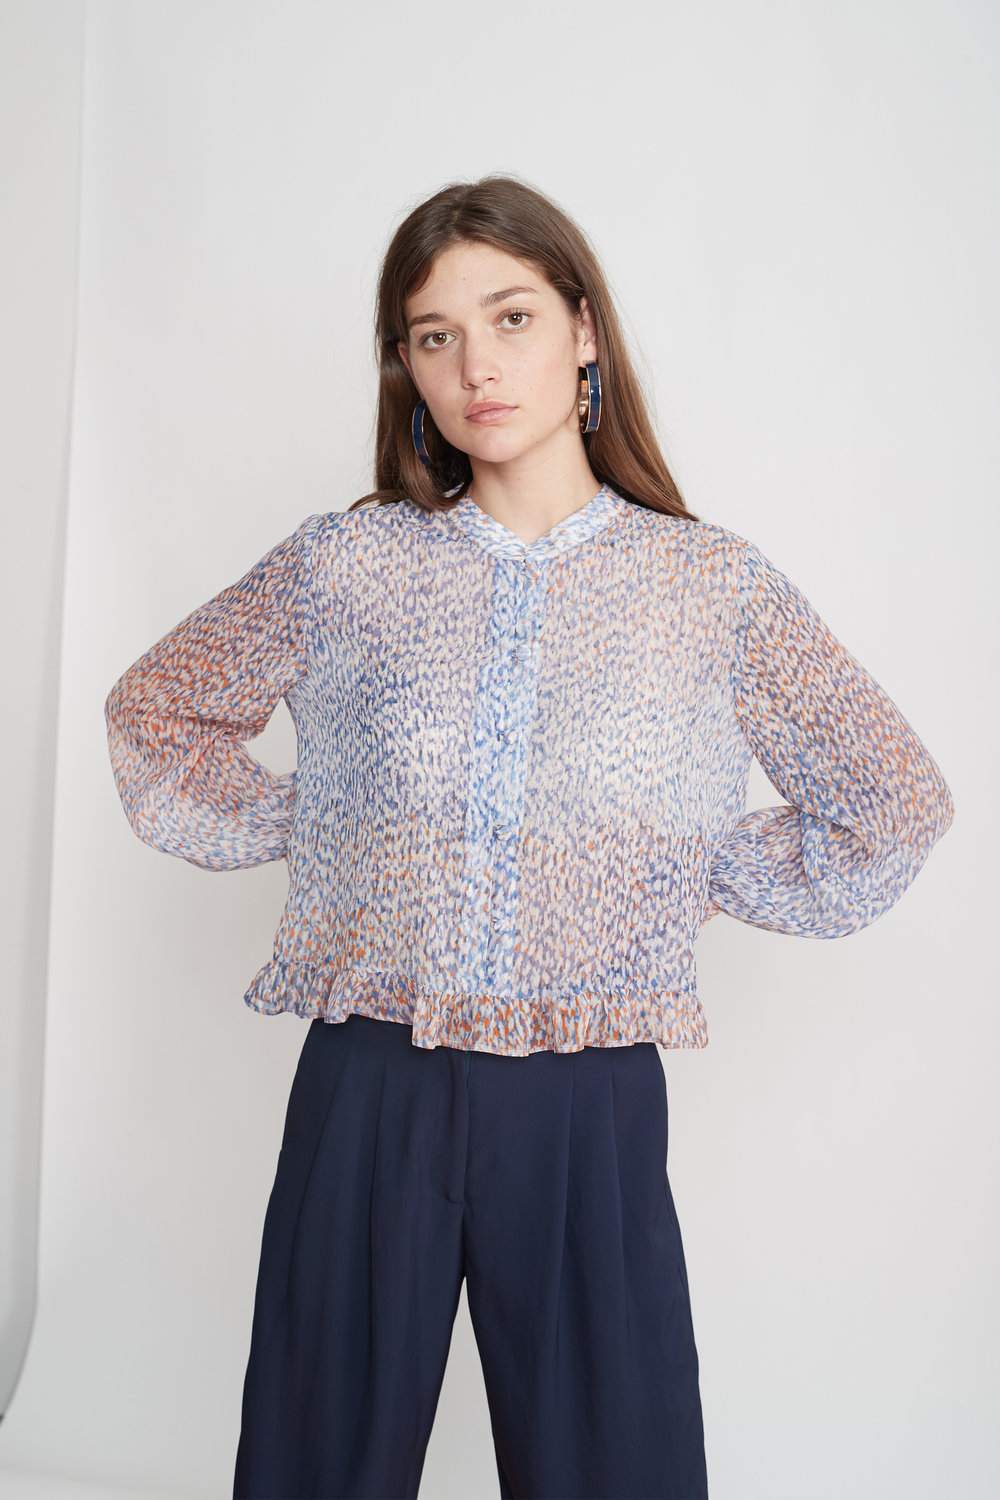 TSN_2. The Library blouse.jpg